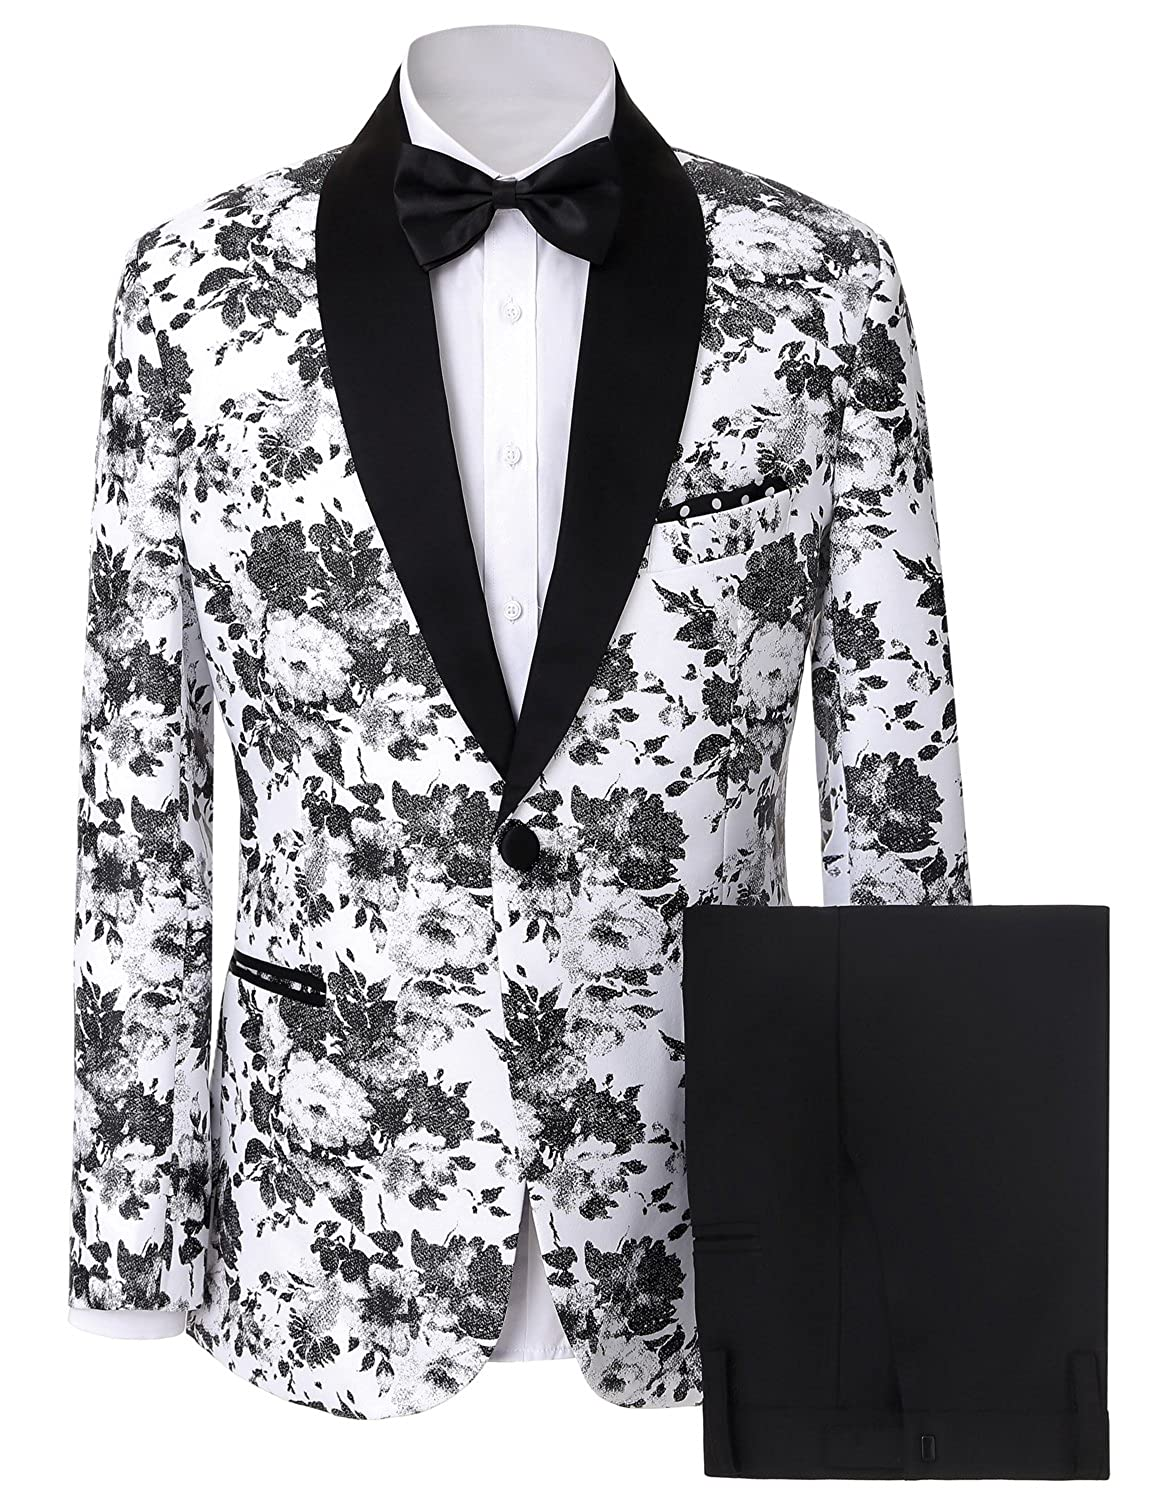 Lilis® Men's Fashion Dress Floral Suit Shawl Lapel Slim Fit Stylish Blazer & Pants